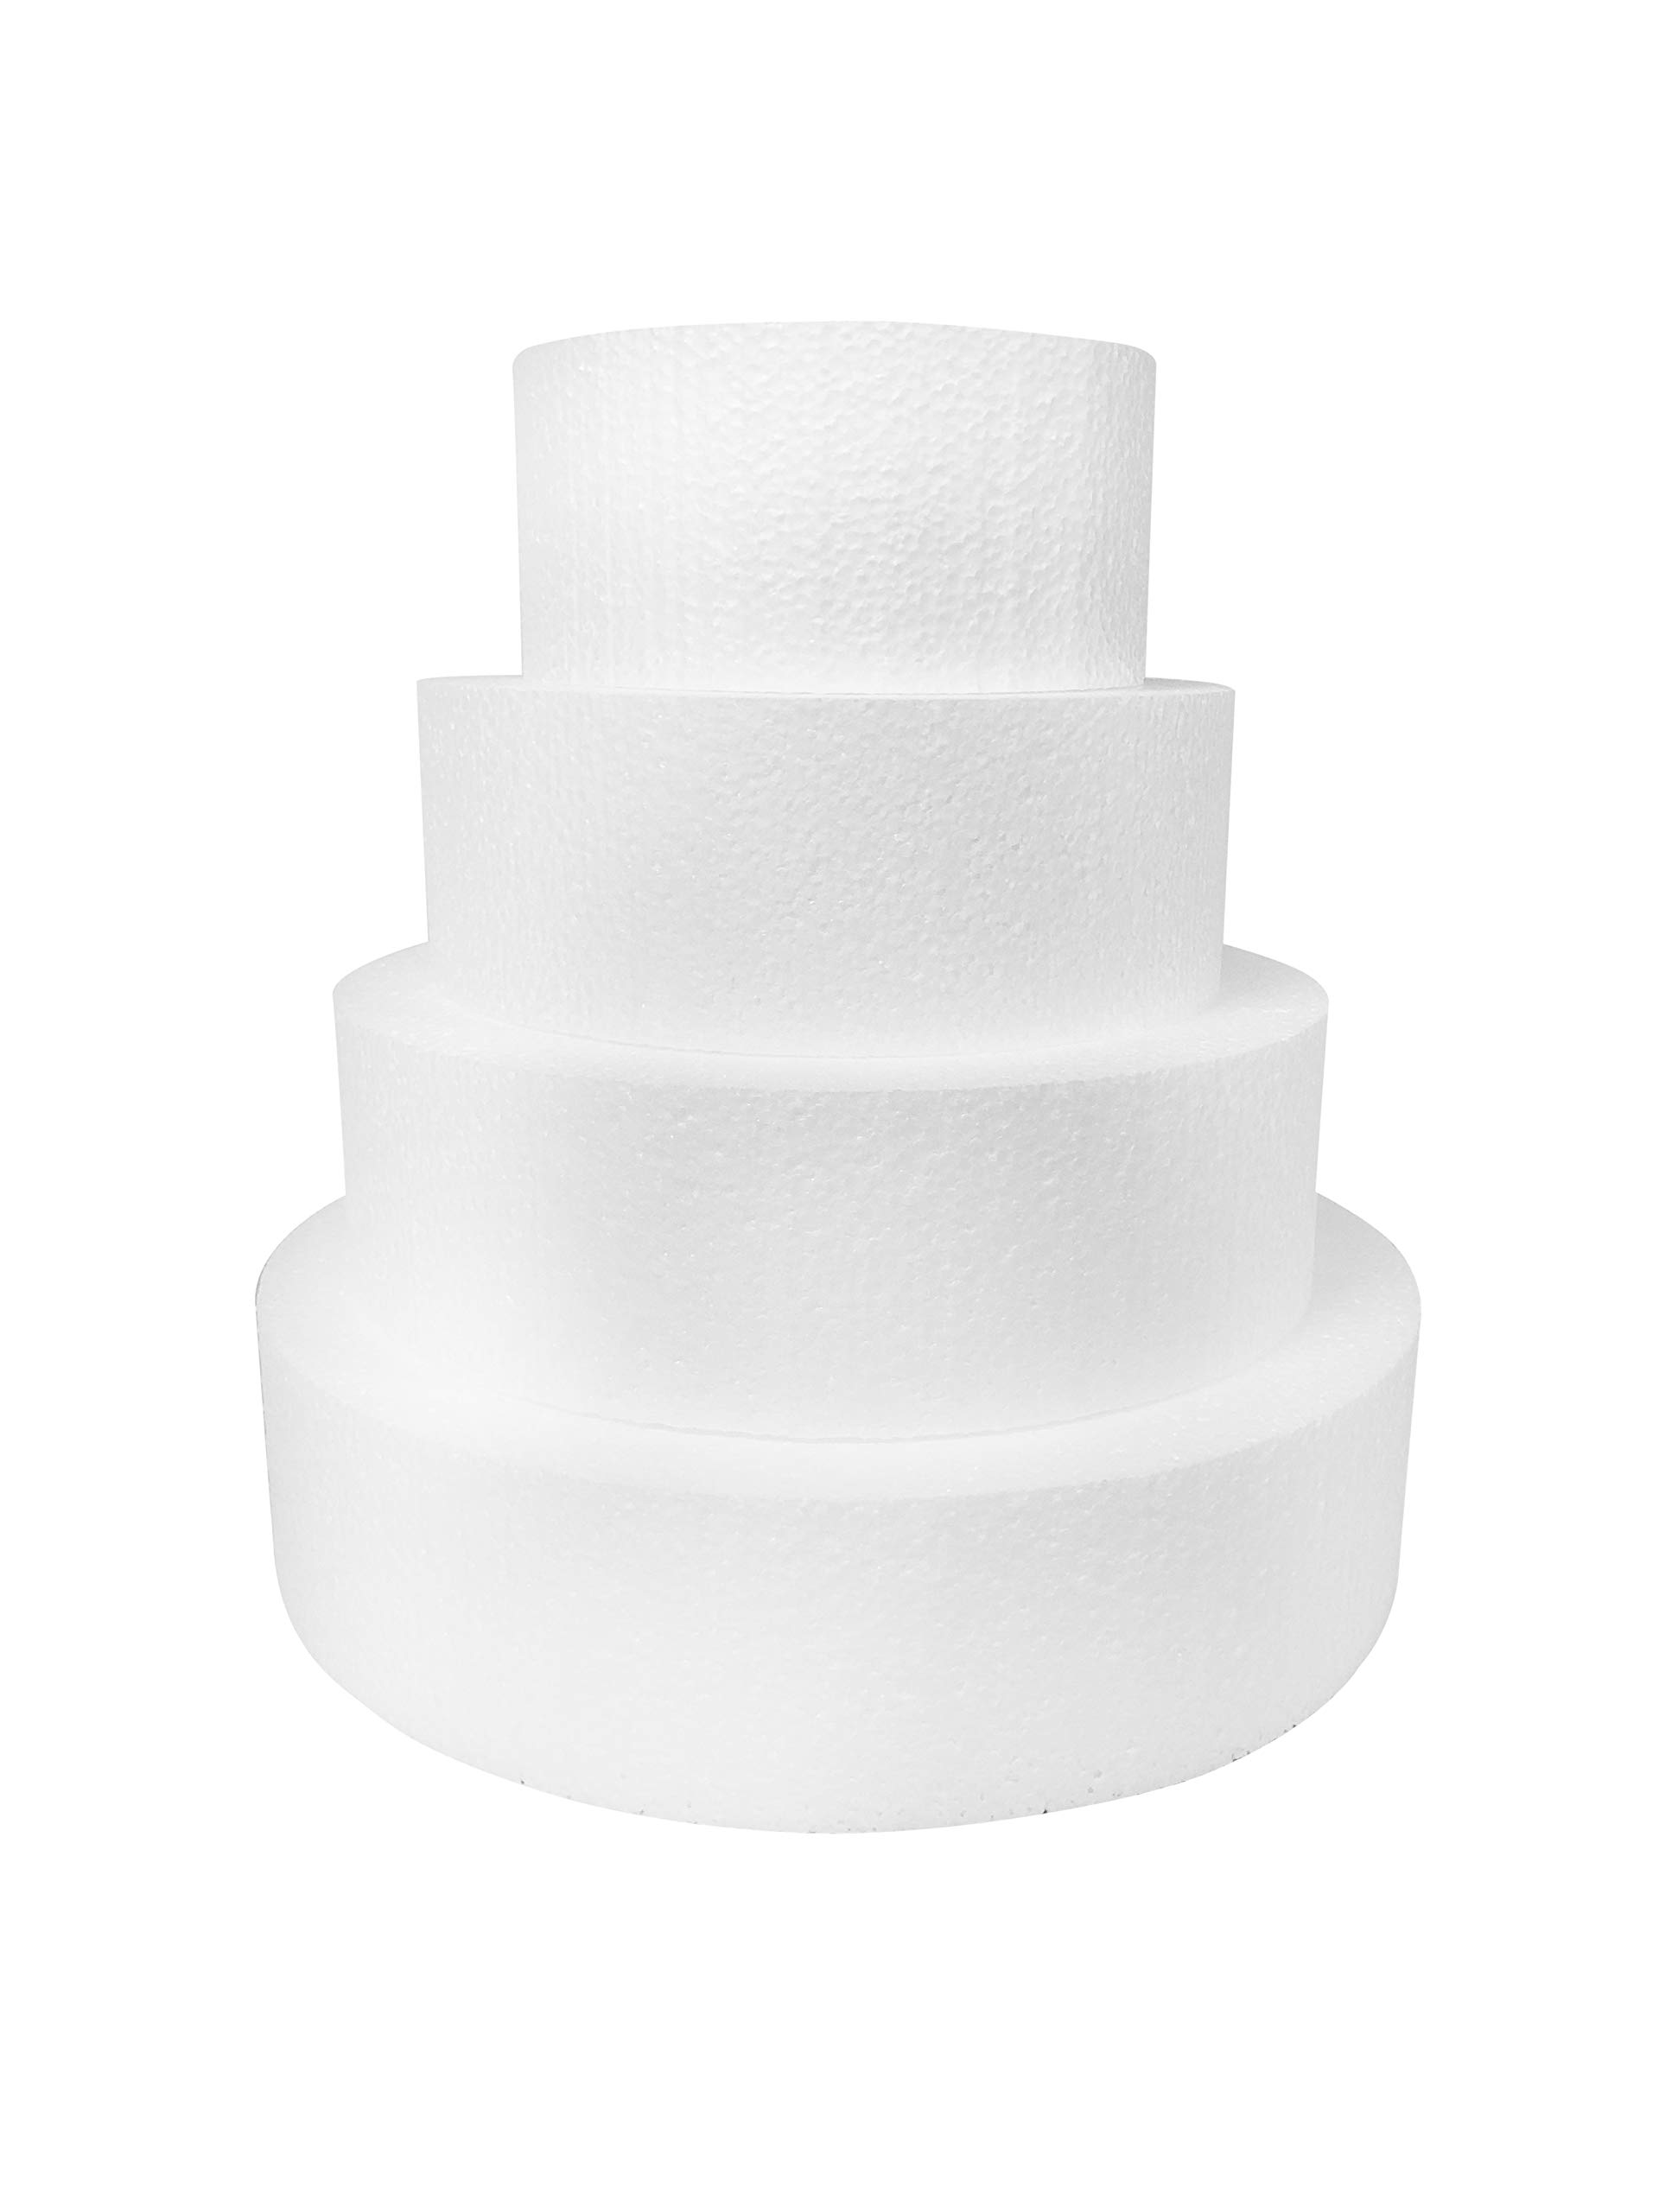 Round 4'' Cake Dummies - Set Of 4, Each 4'' High by 6'', 8'', 10'', 12'' Round by Shape Innovation, Inc. (Image #1)